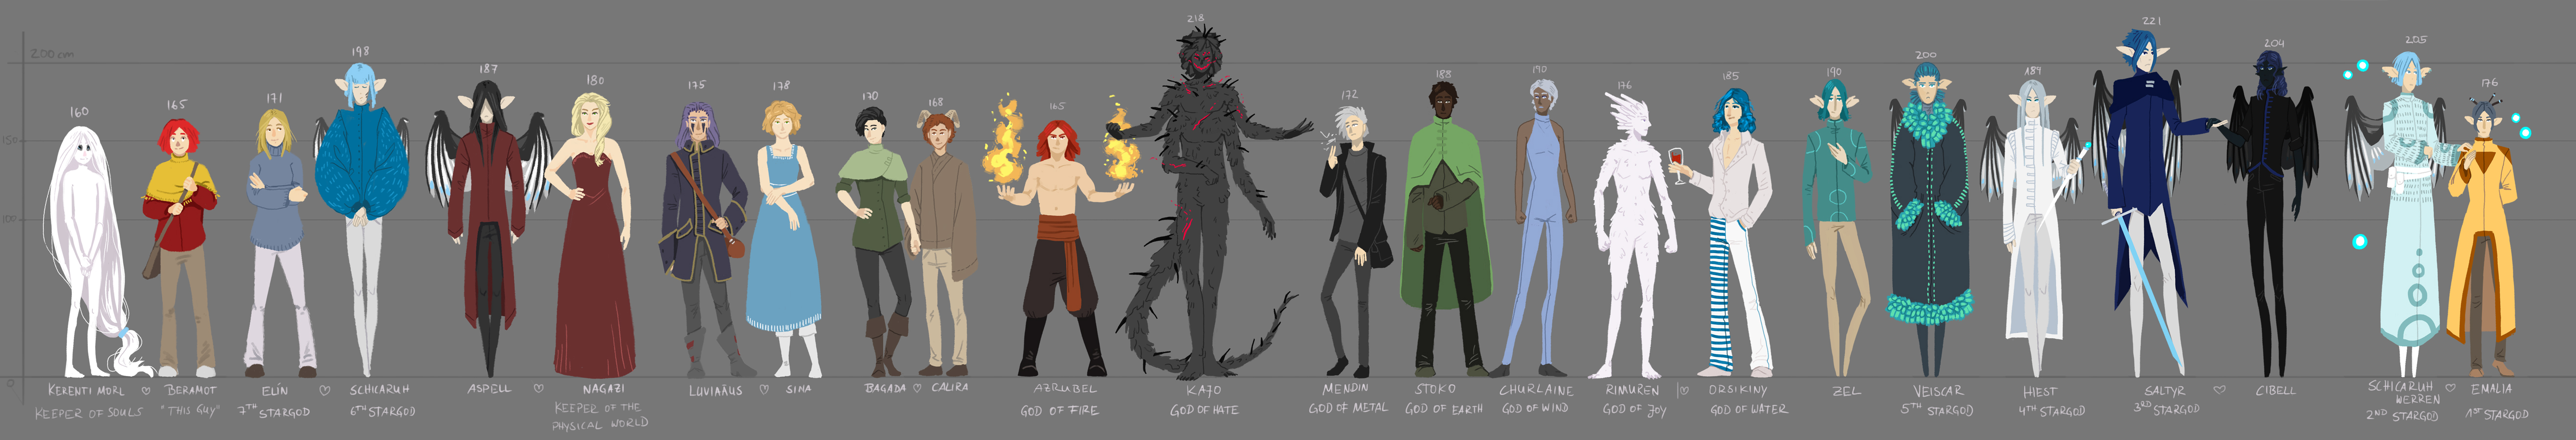 Characters Size Comparison by Kampfkewob